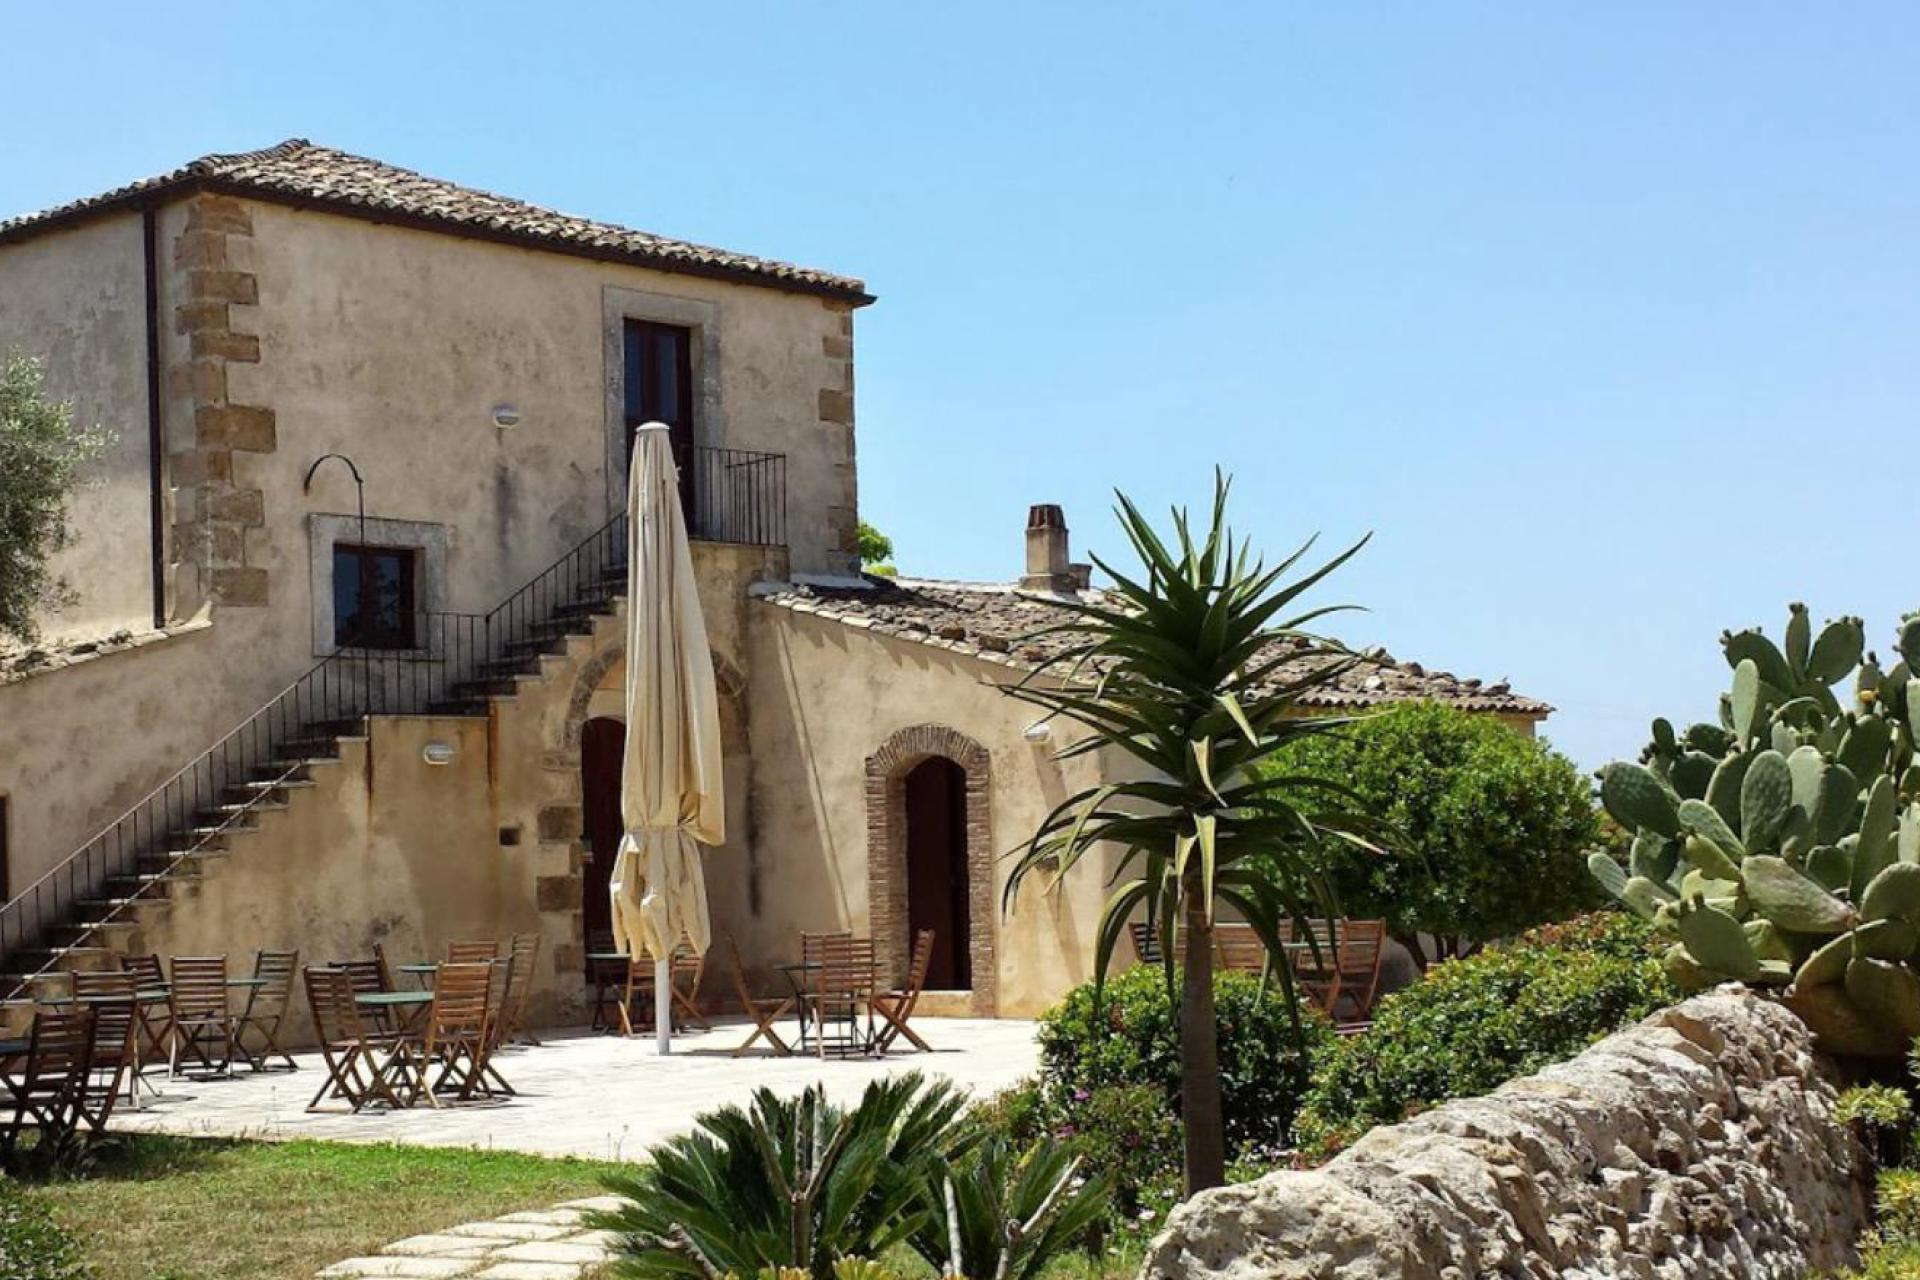 Agriturismo Sicily Cosy agriturismo in Sicily with restaurant